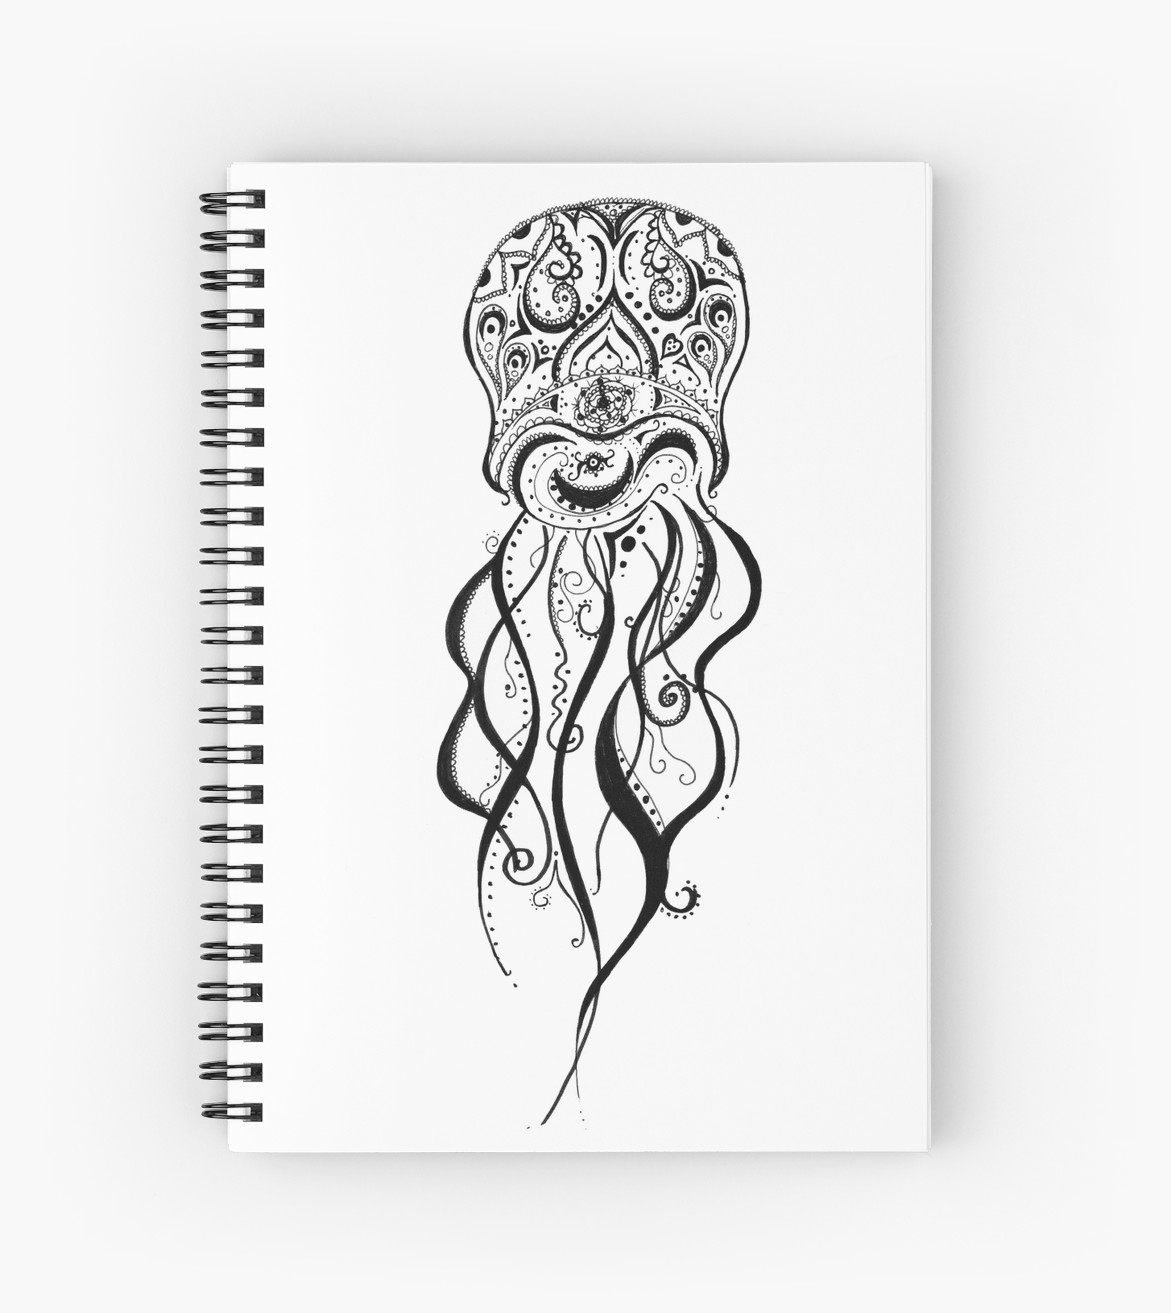 Drawn jellies mandala Jellyfish by Notebooks Jellyfish Mandala